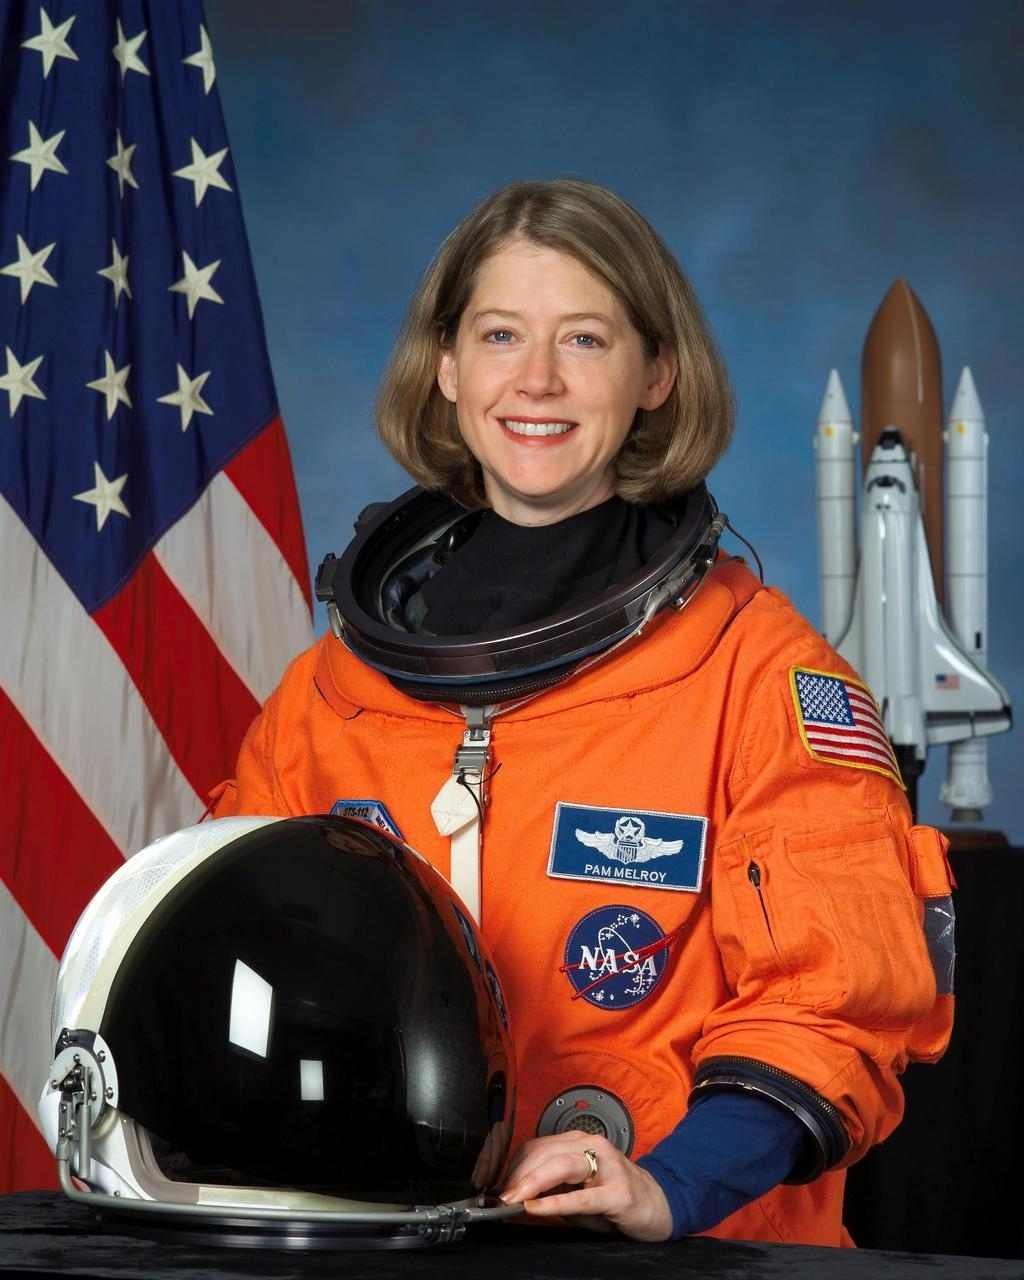 Astronaut Abby_Space and STEM Role Models for Girls_Pamela Melroy Image